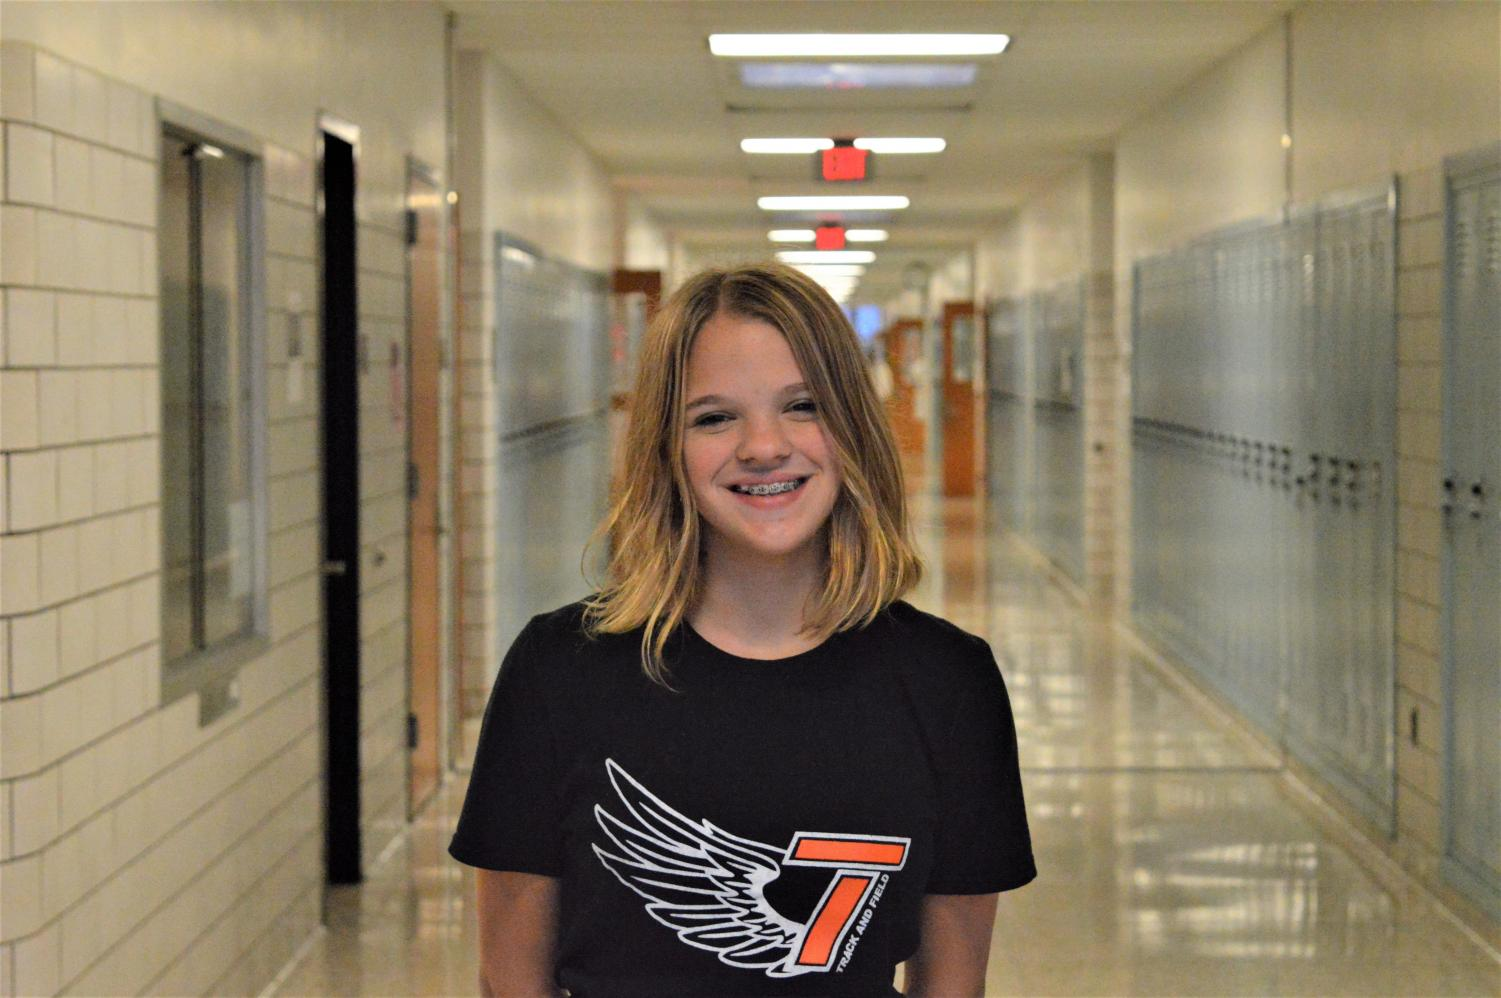 Abigail Kaspick is Freshman of the Week and loves the cafe and is enjoying High School.